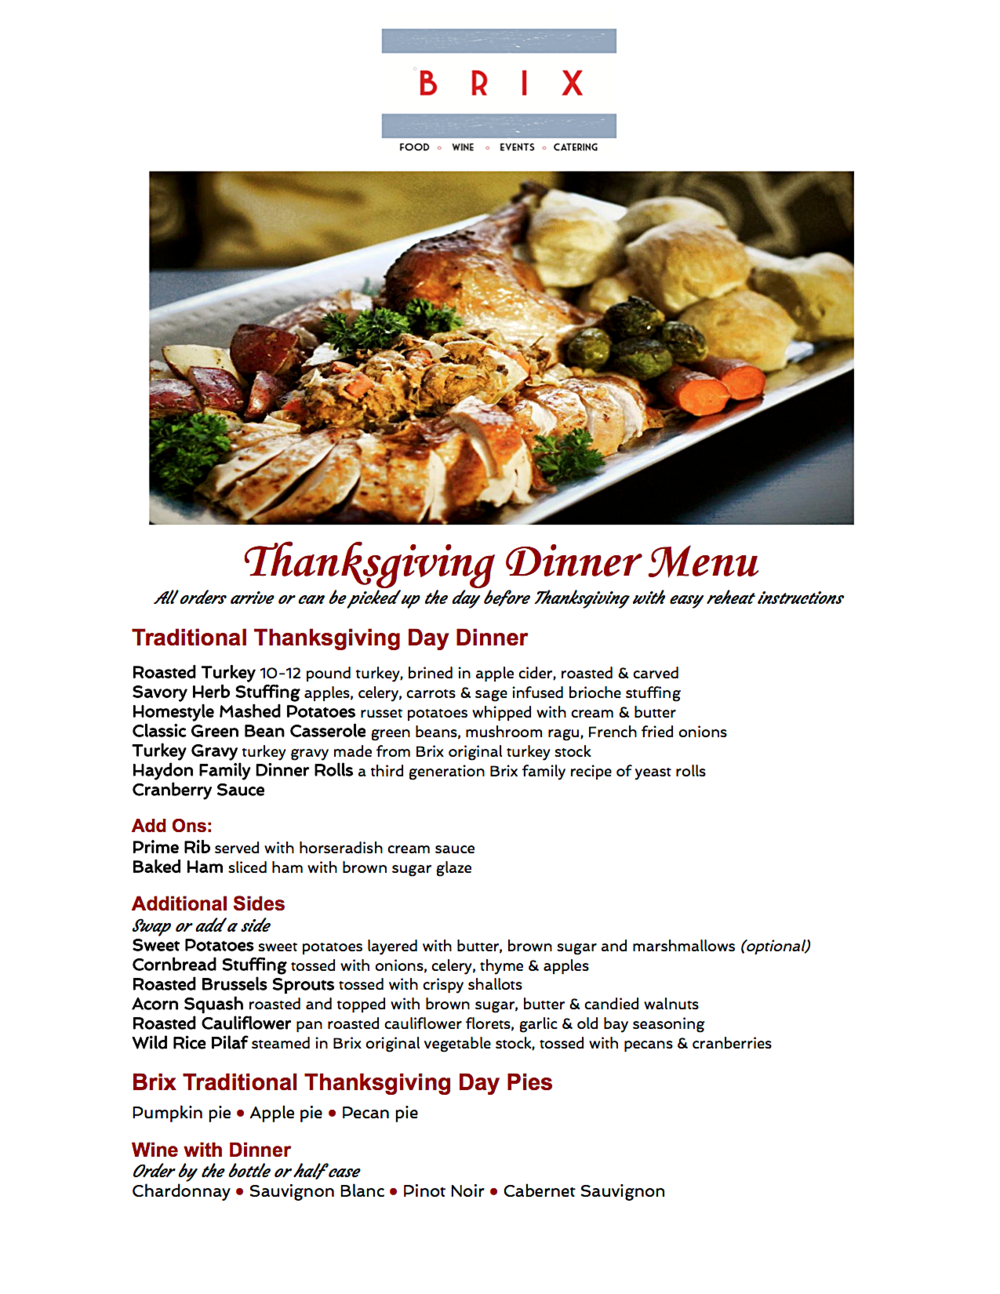 Thanksgiving Made Easy! | Brix Catering & Events